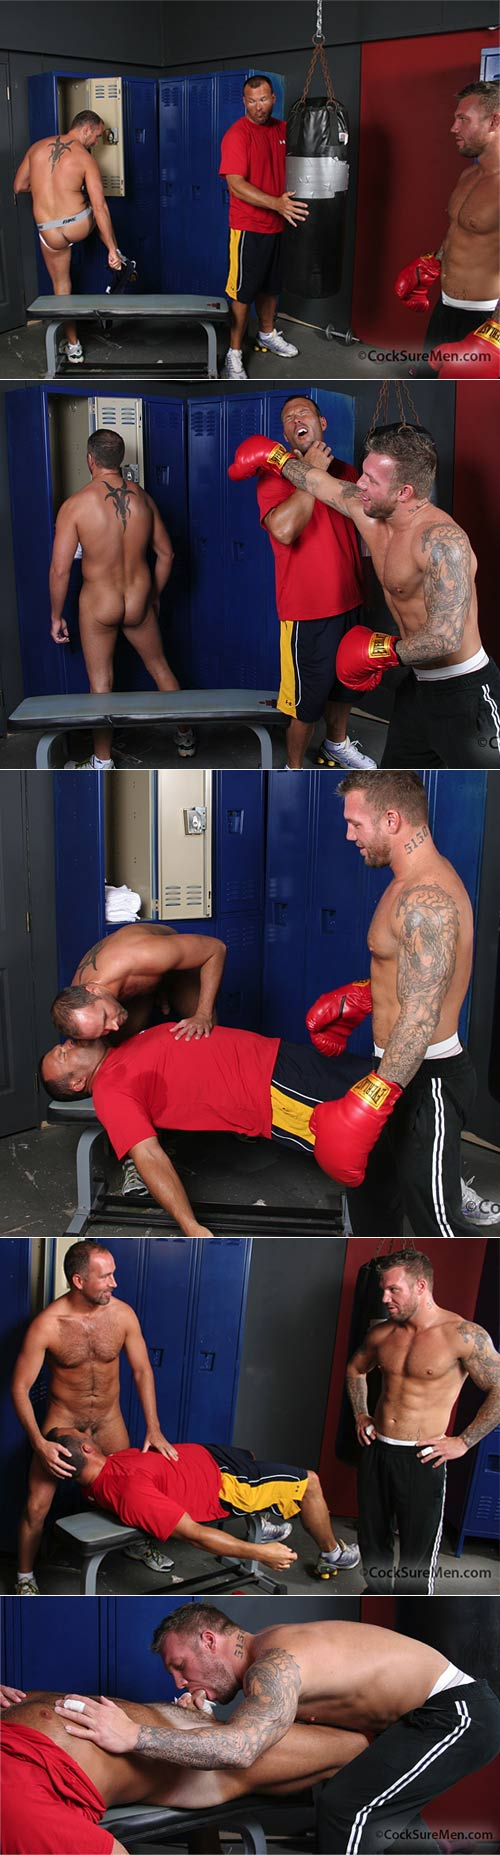 Bo, Dane & Brock (Locker Room Knockout) at CocksureMen.com